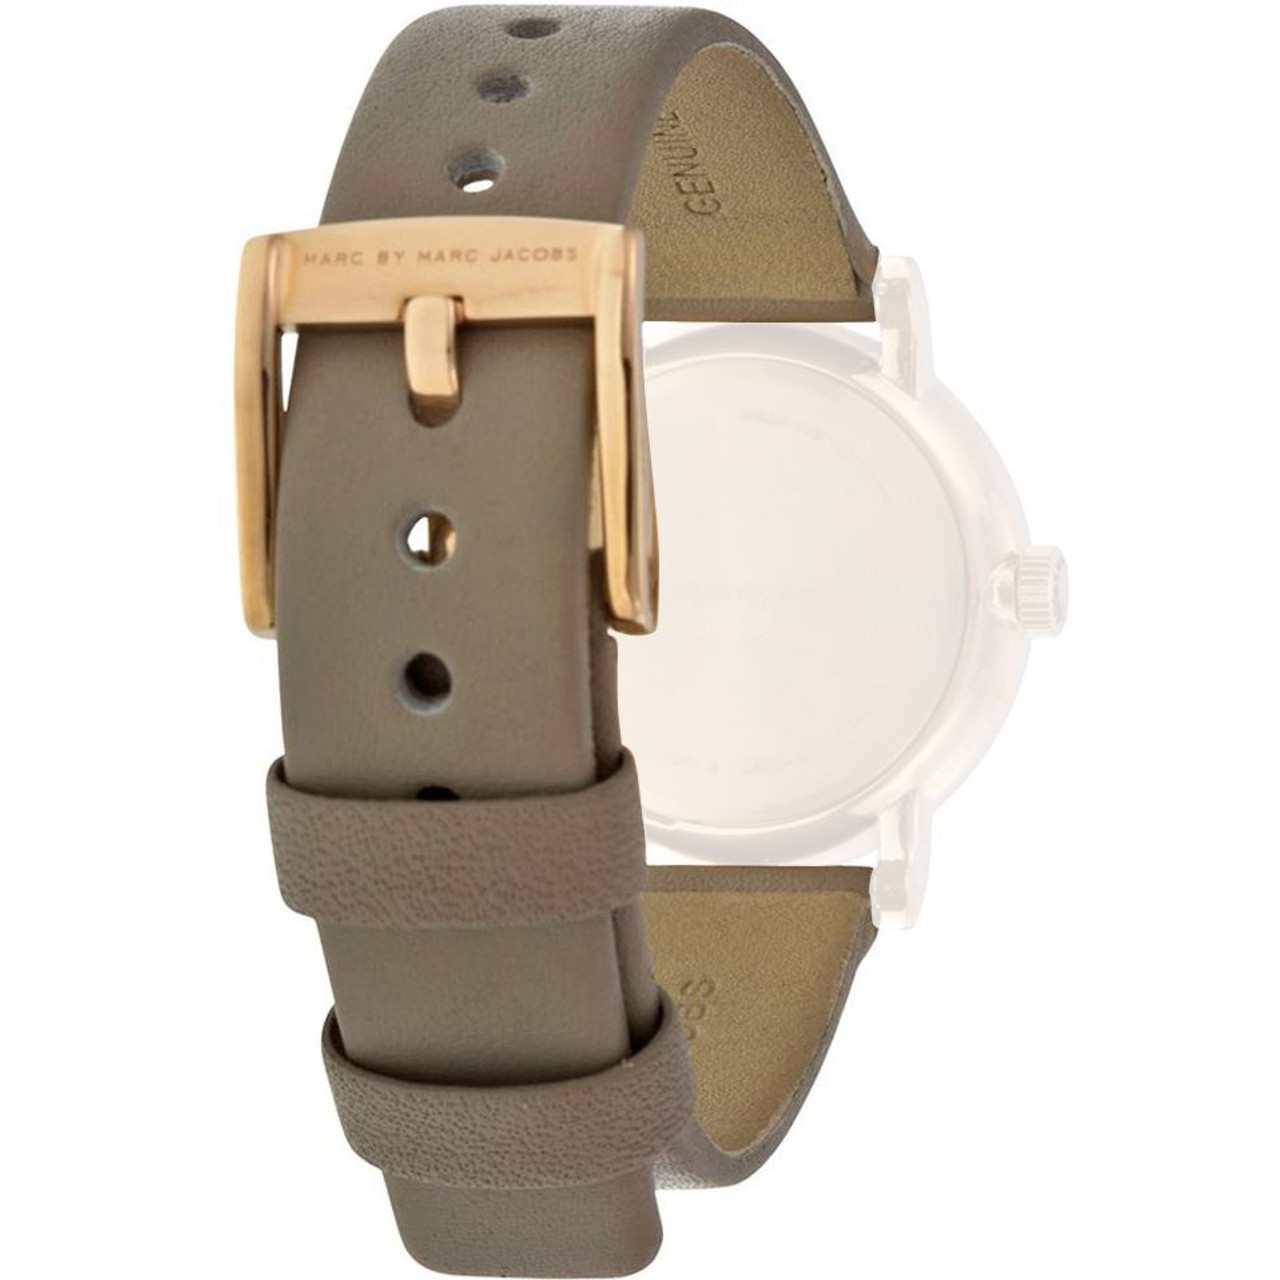 dd6c2a6734f7d Marc Jacobs Replacement Watch Strap Grey Leather 14mm For MBM1318